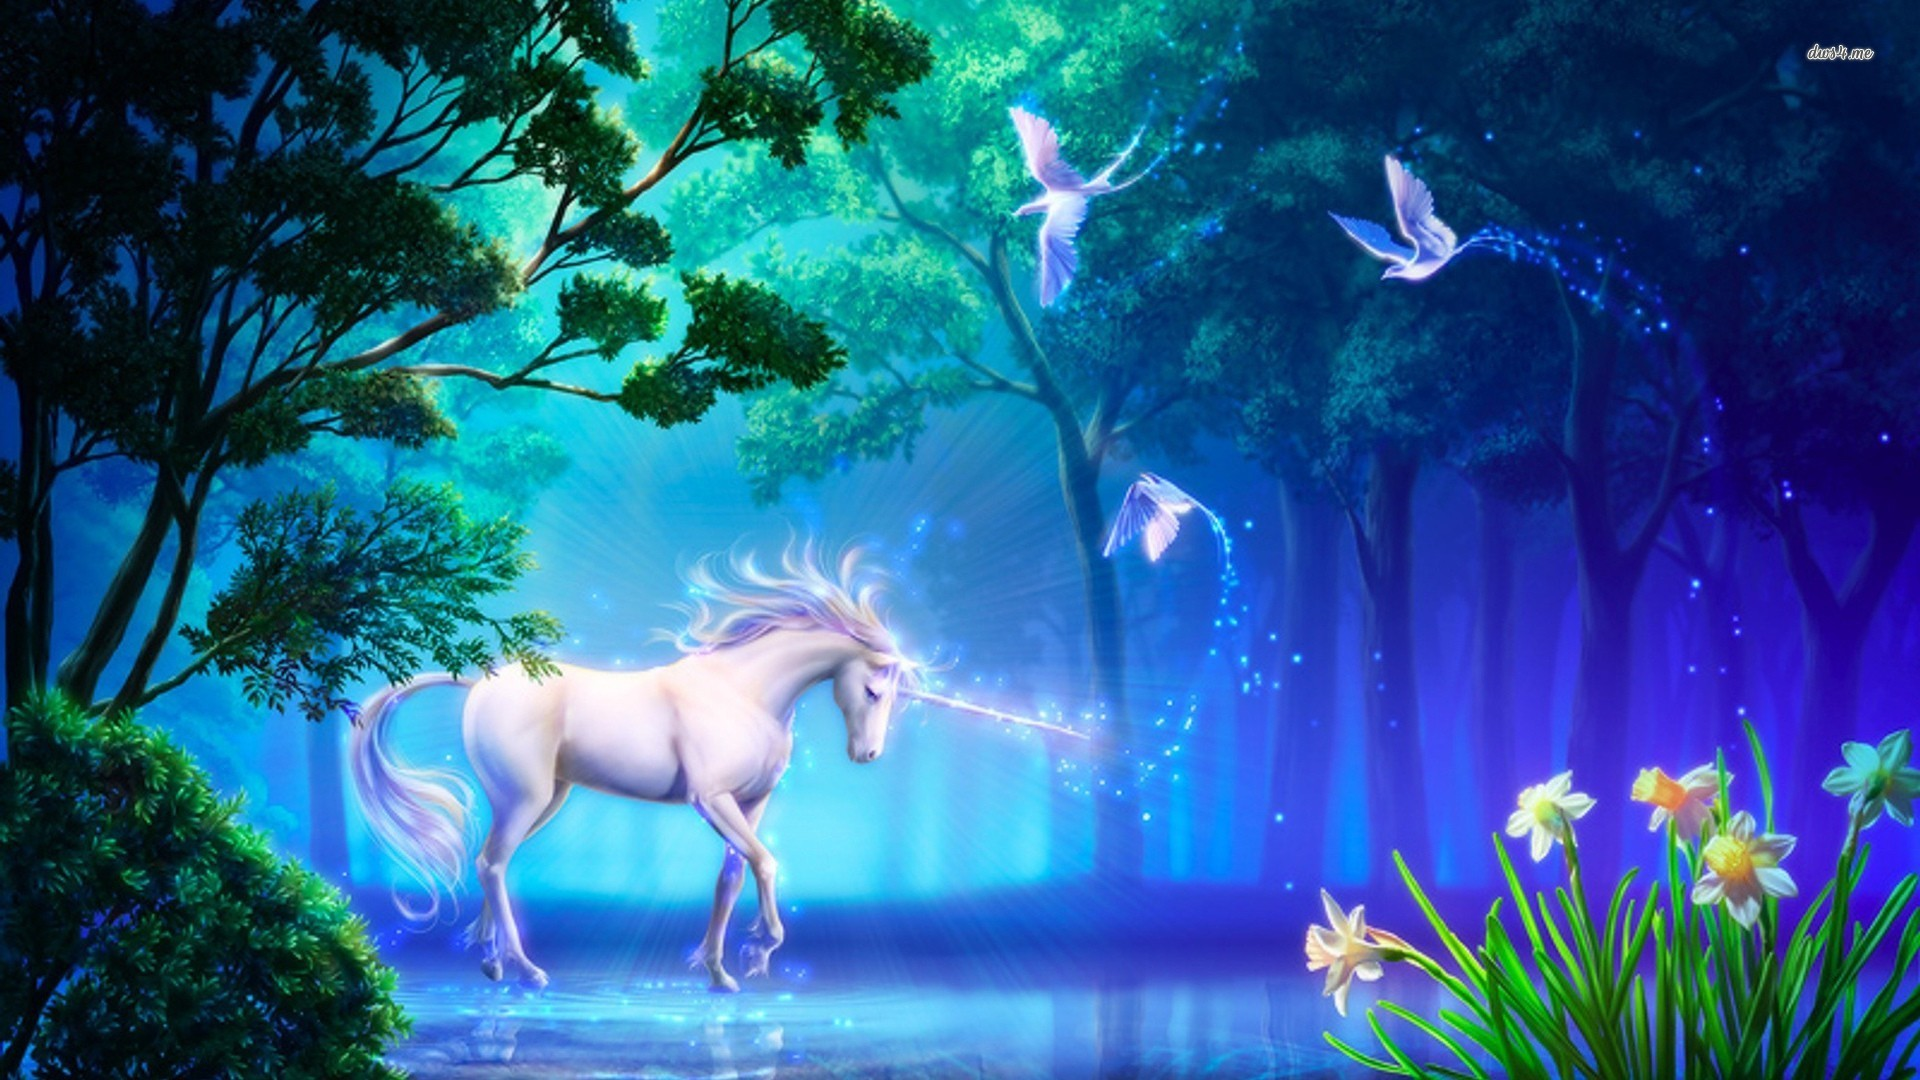 Amazing   Wallpaper Horse Mystical - Unicorn-Fantasy-In-The-Forest  Trends_8310098.jpg